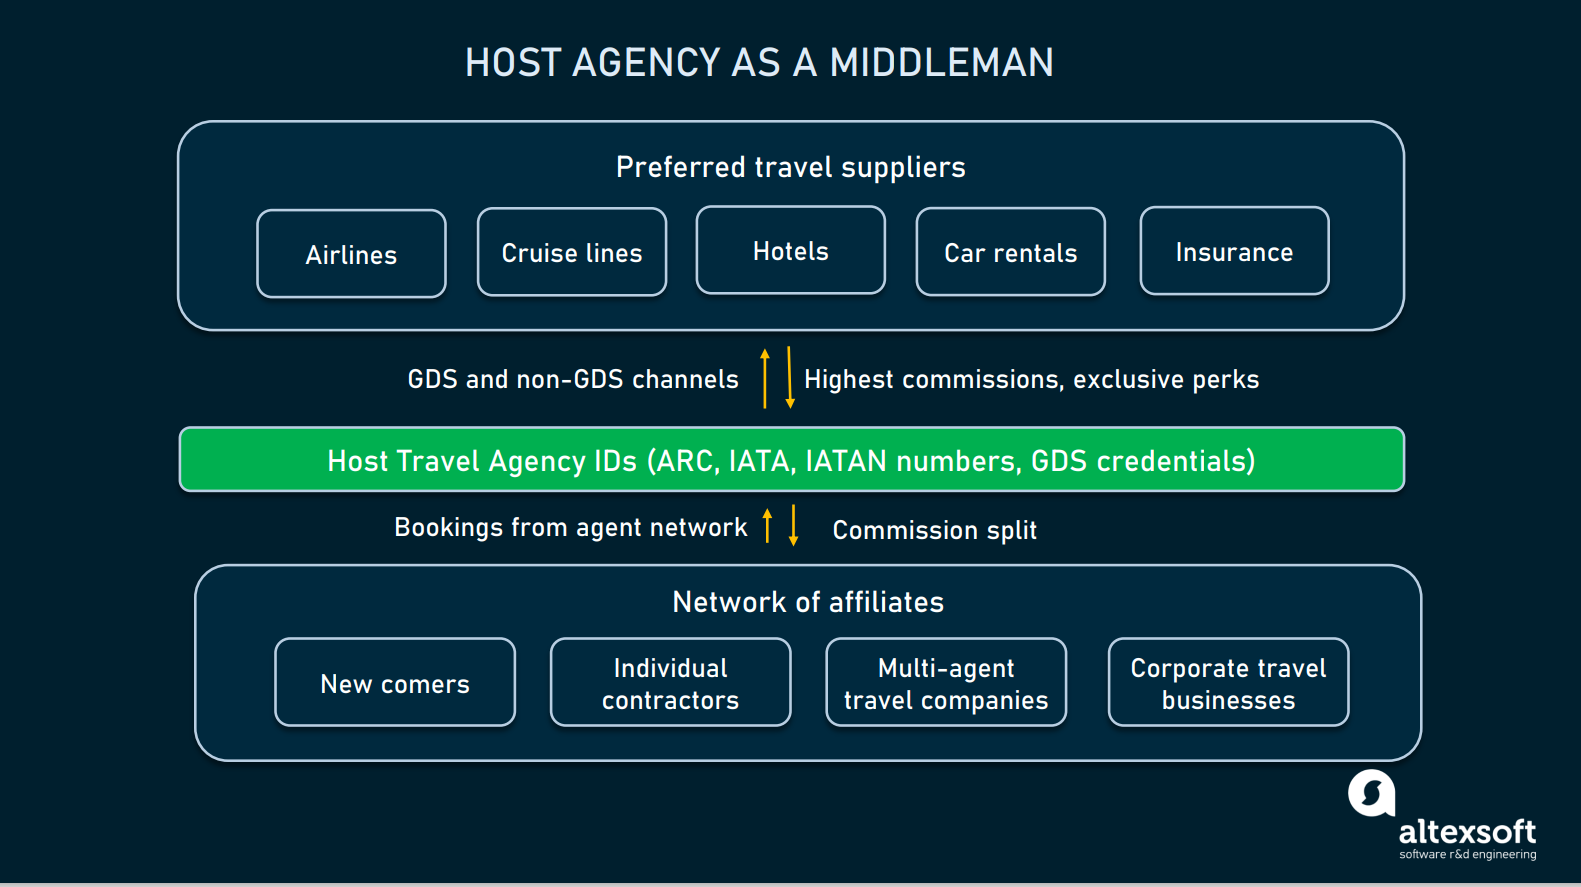 Host Agency business model